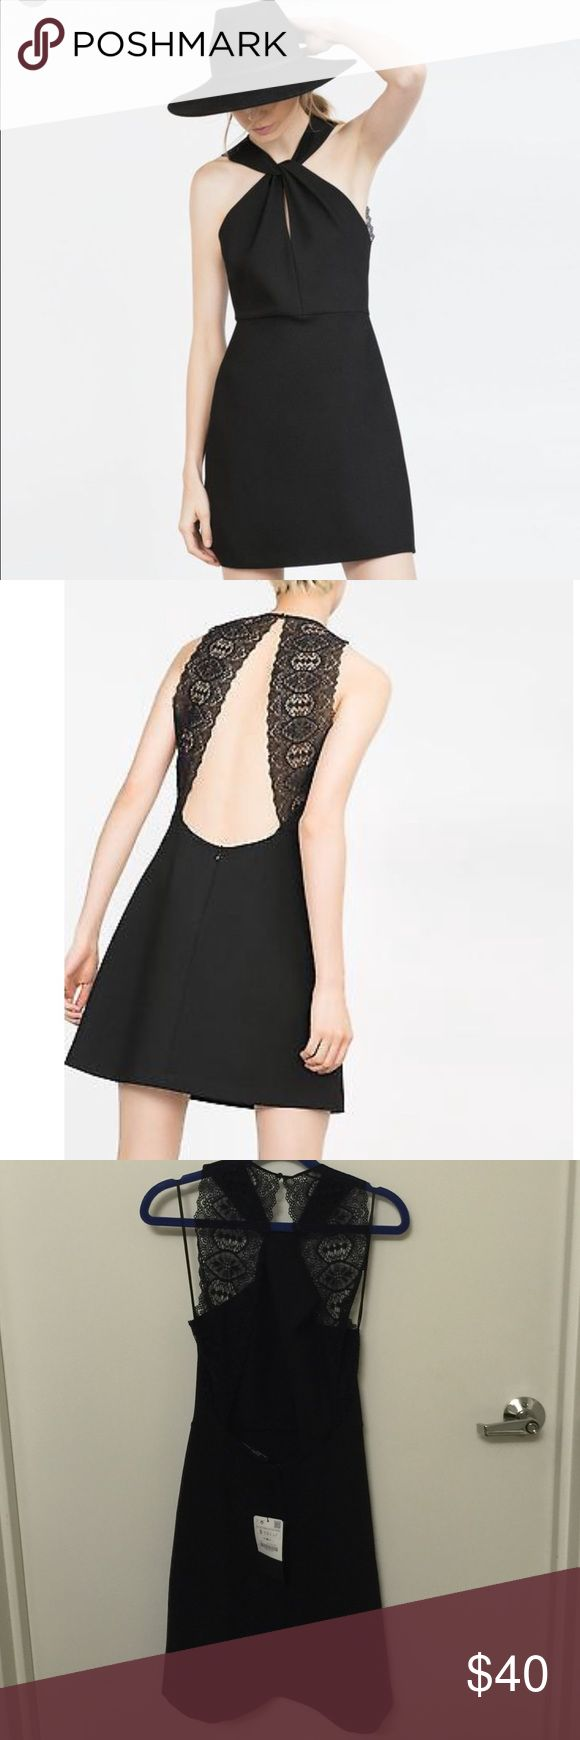 Knotted halter skater dress with lace back Rare Zara black knotted halter skater dress with laced back. Perfect cocktail dress for night out or parties. Zara Dresses Mini